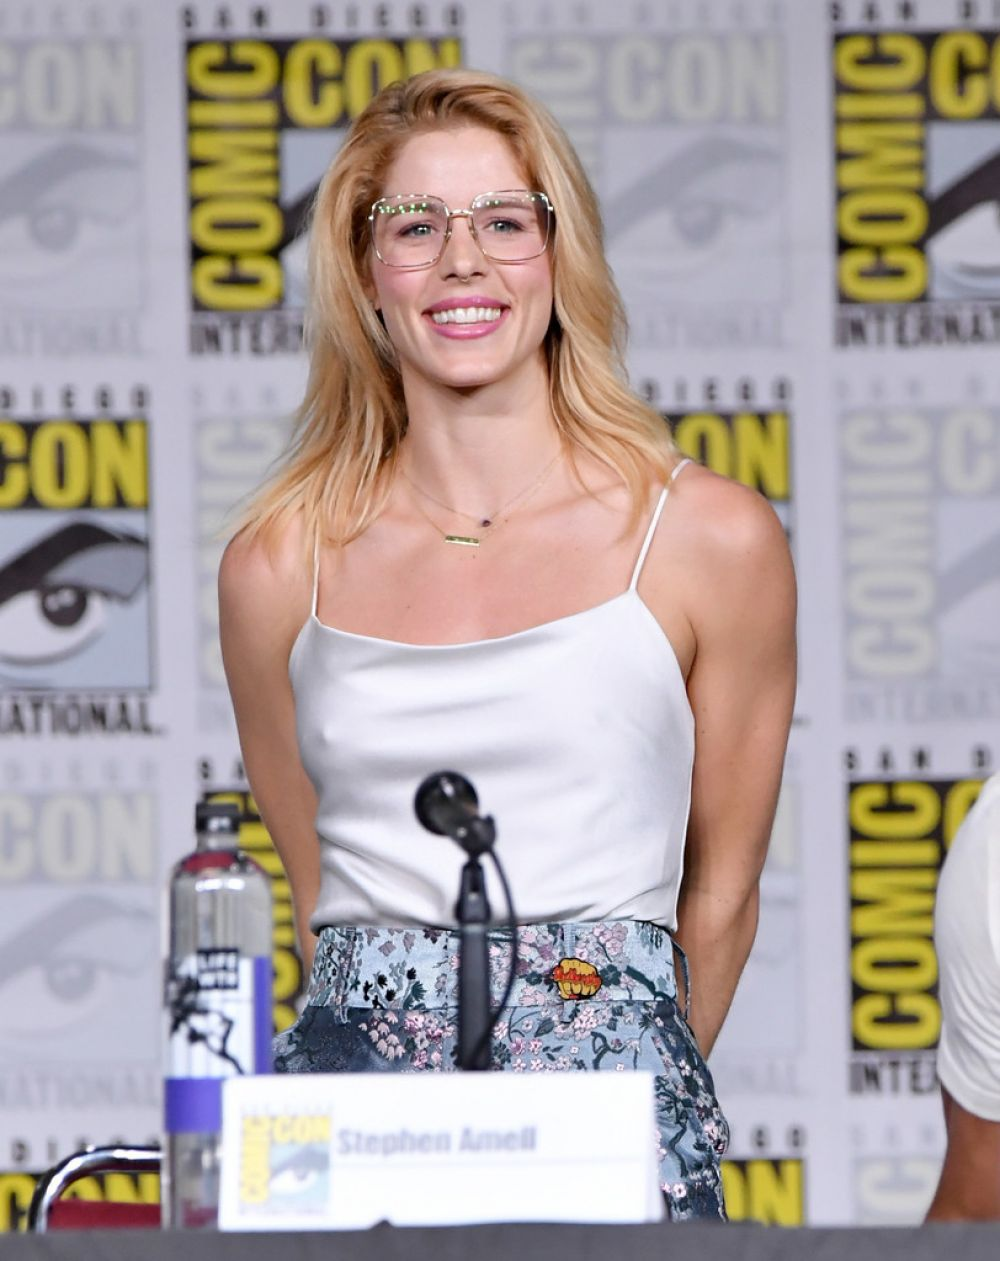 Bett Comic Emily Bett Rickards At Arrow Panel At Comic Con In San Diego